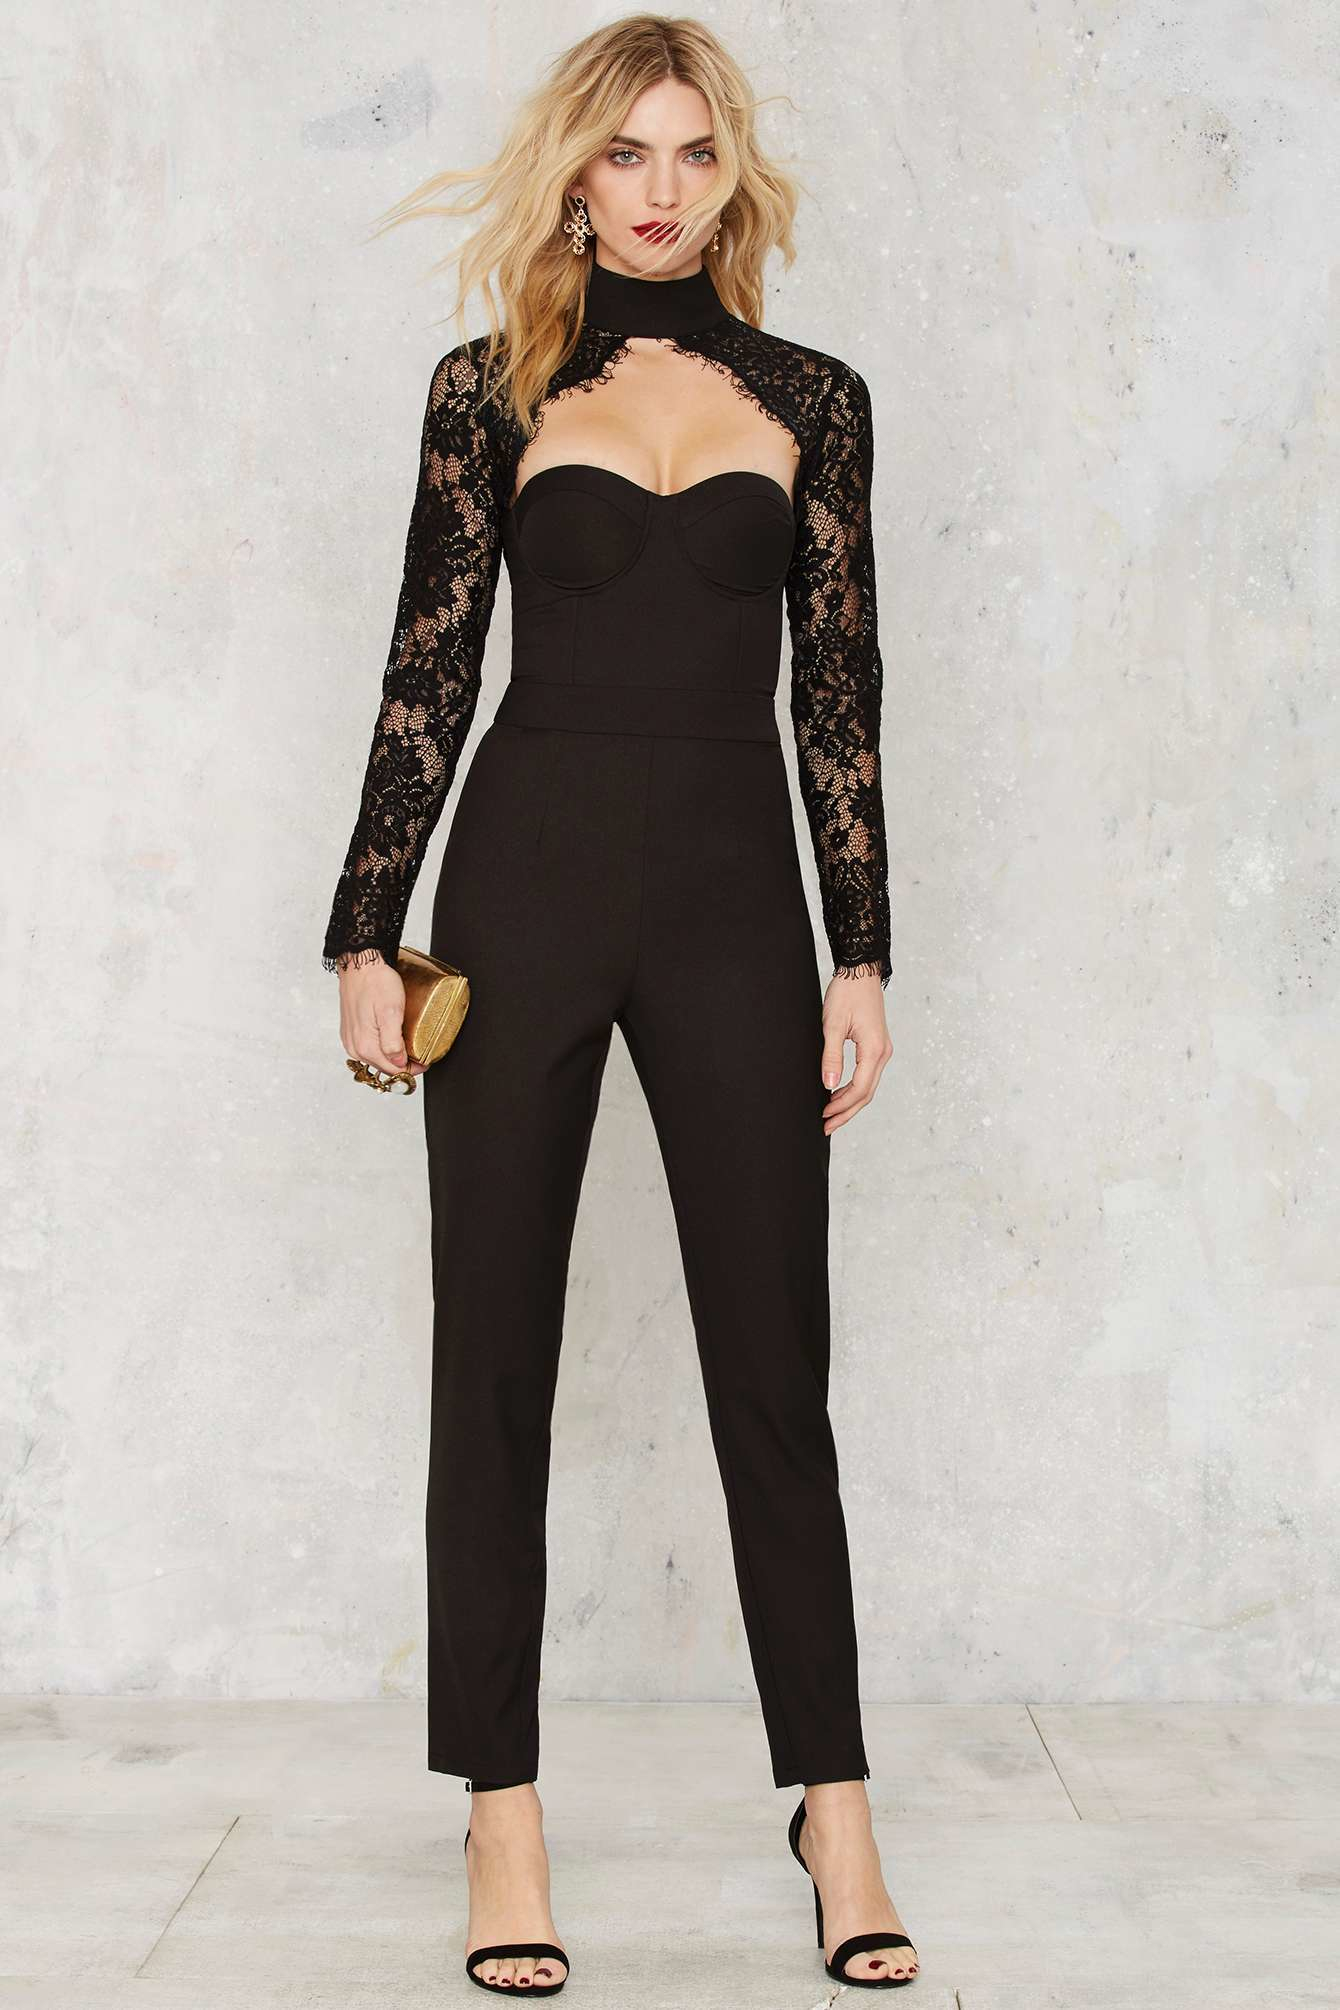 Buy the latest lace jumpsuits cheap shop fashion style with free shipping, and check out our daily updated new arrival lace jumpsuits at bonjournal.tk